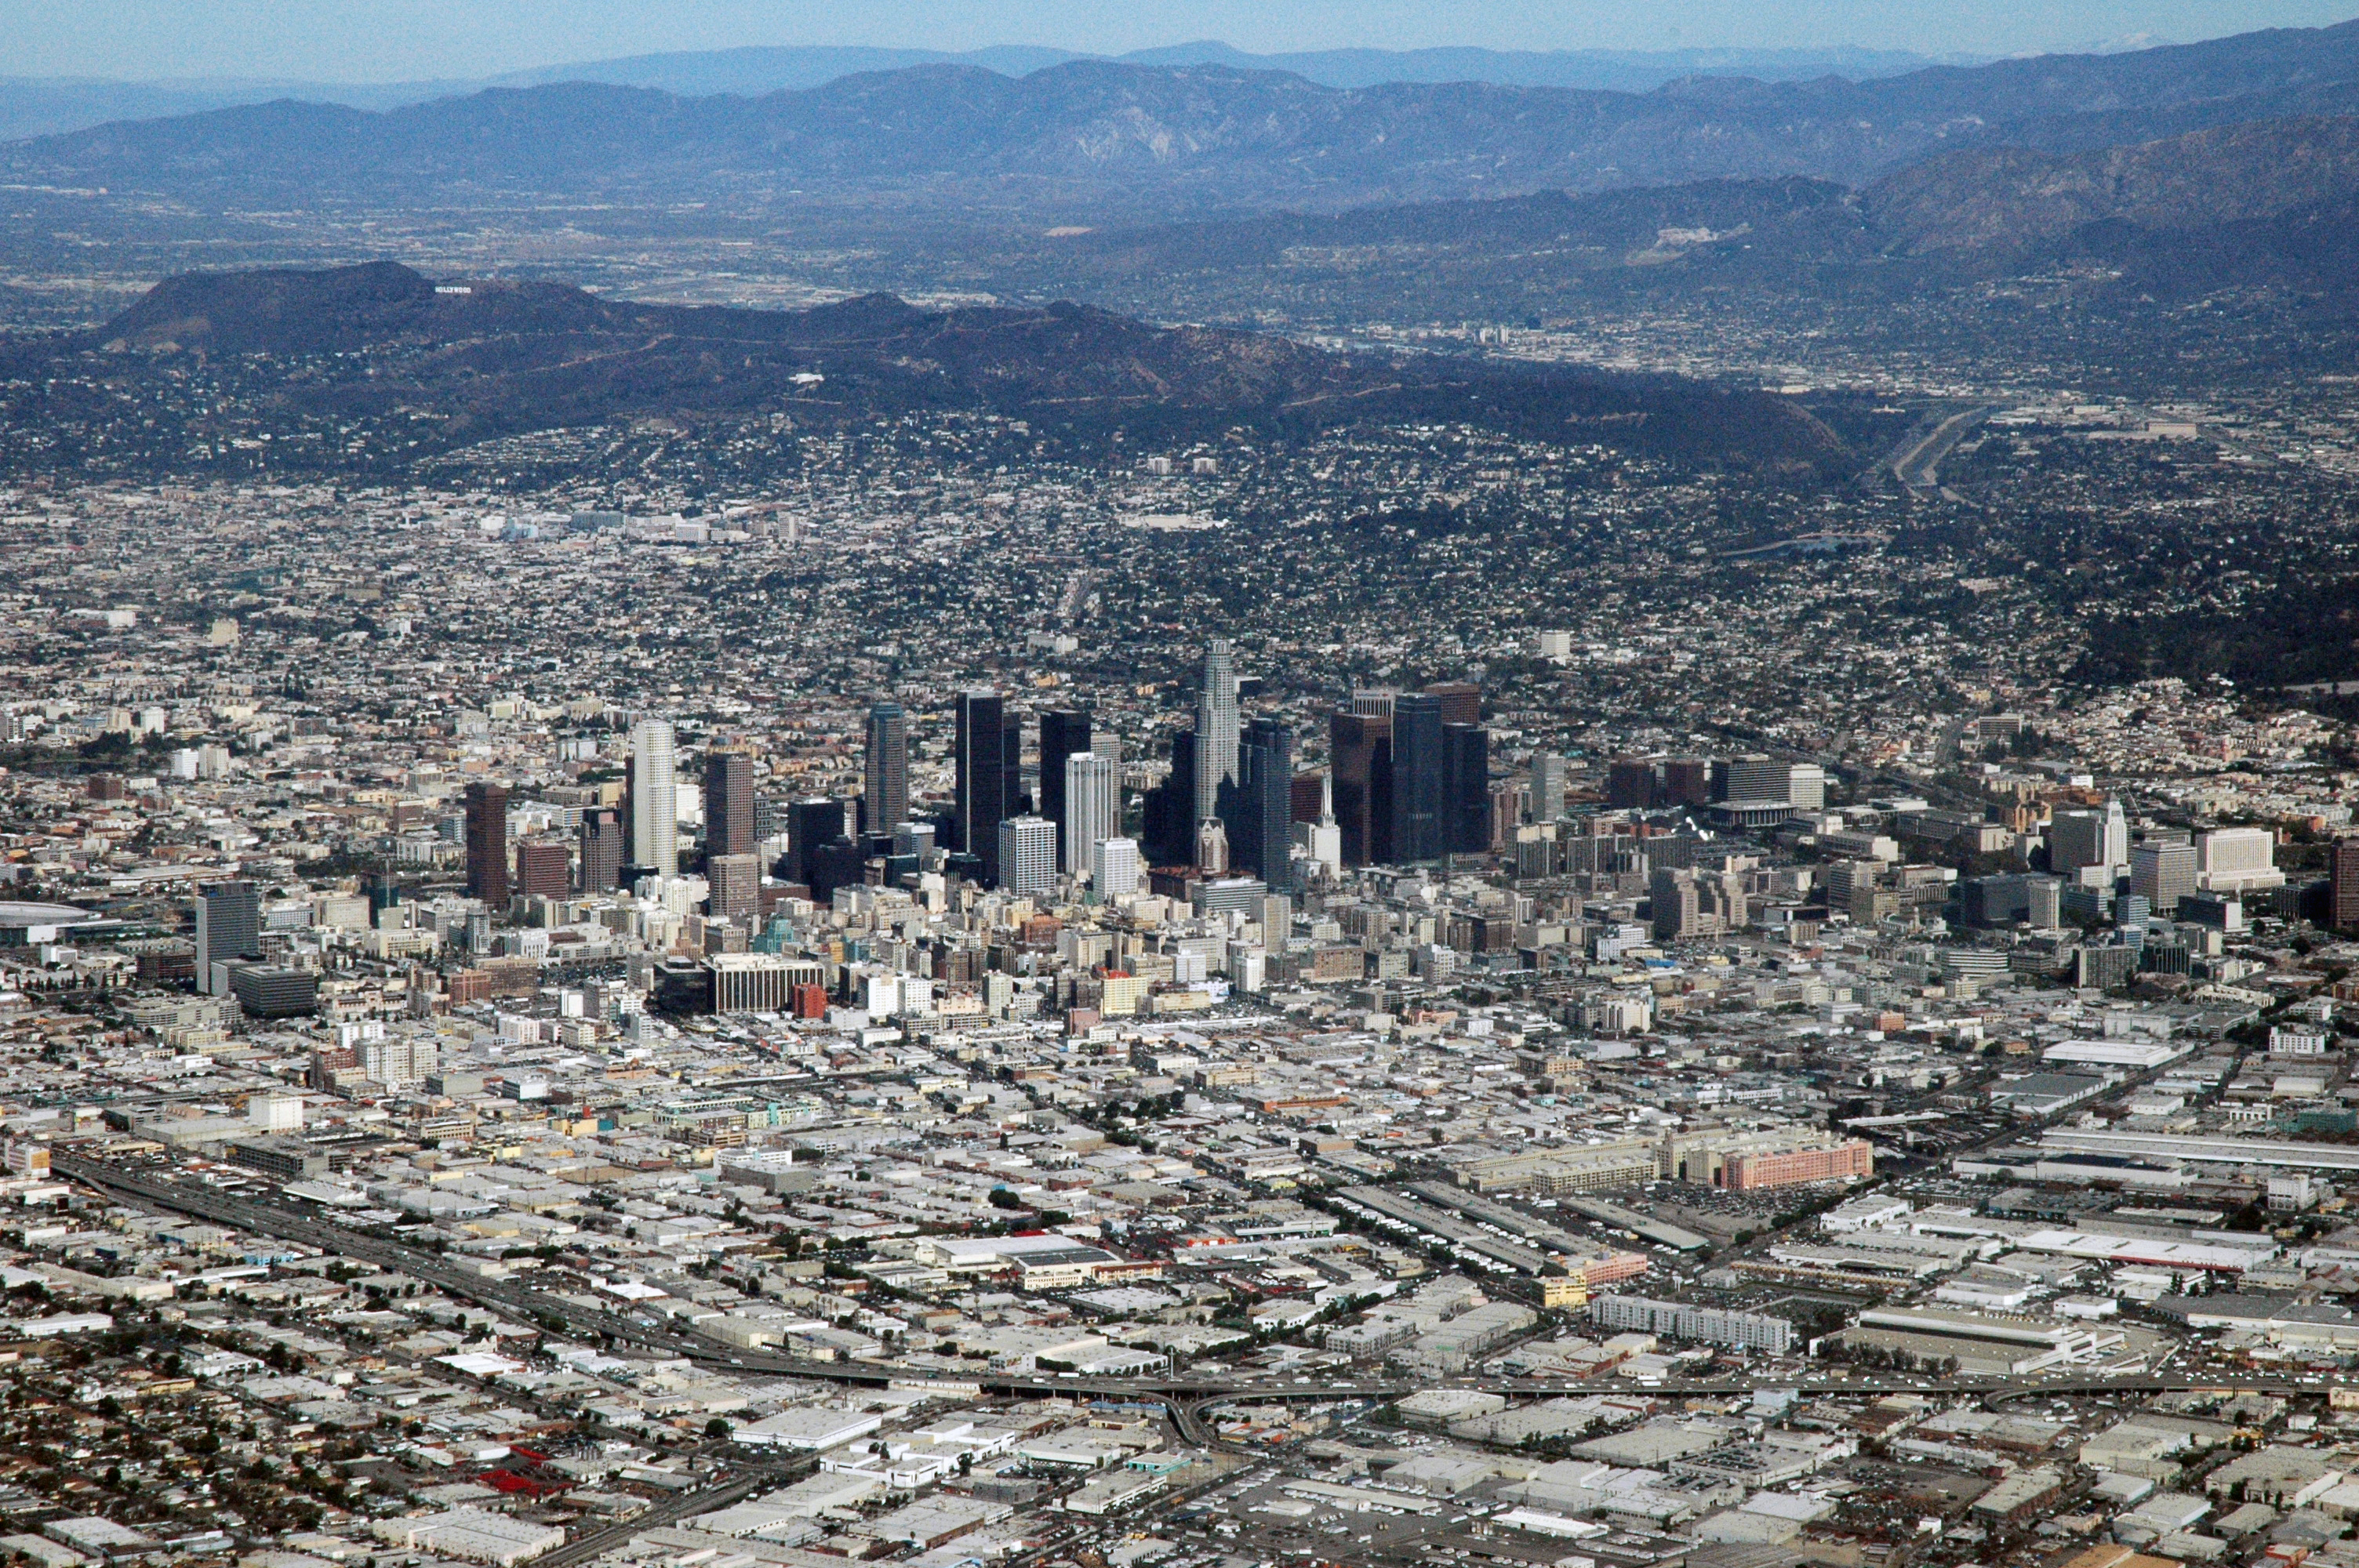 Los Angeles, CA from the air by Marshall Astor from San Pedro, United States